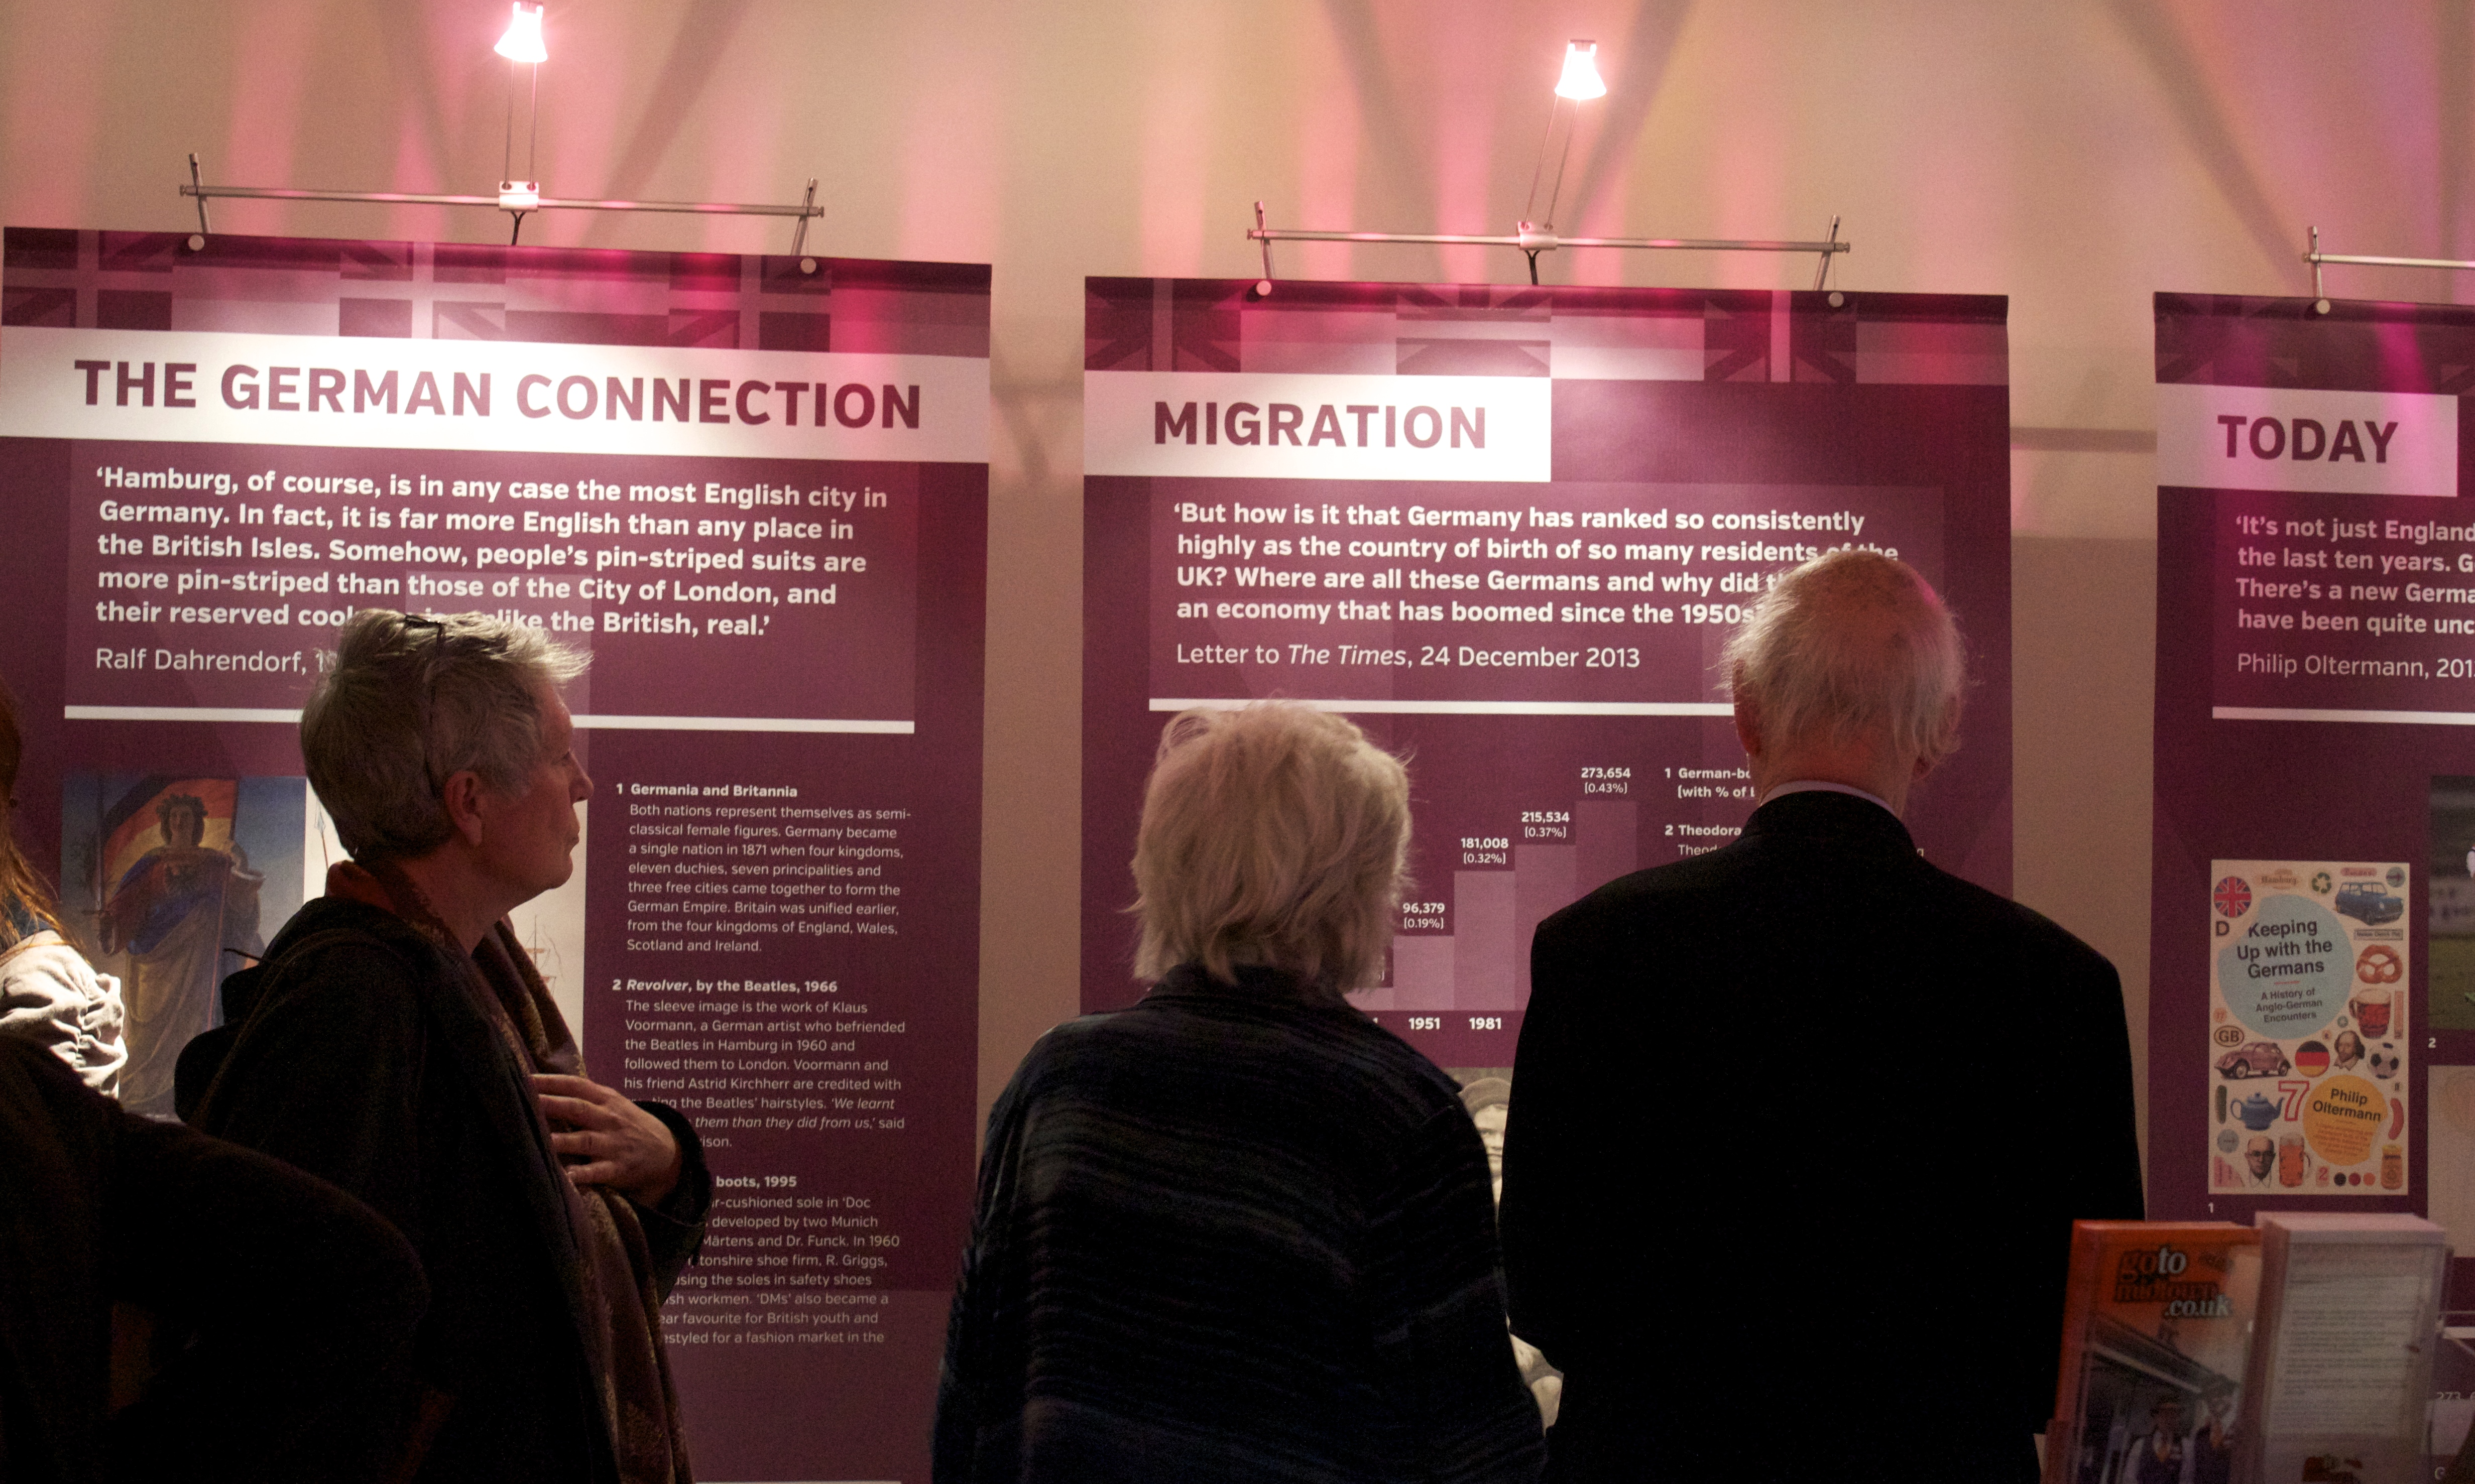 Guests look at Germans in Britain exhibition panels: 'The German Connection', 'Migration' and 'Today'